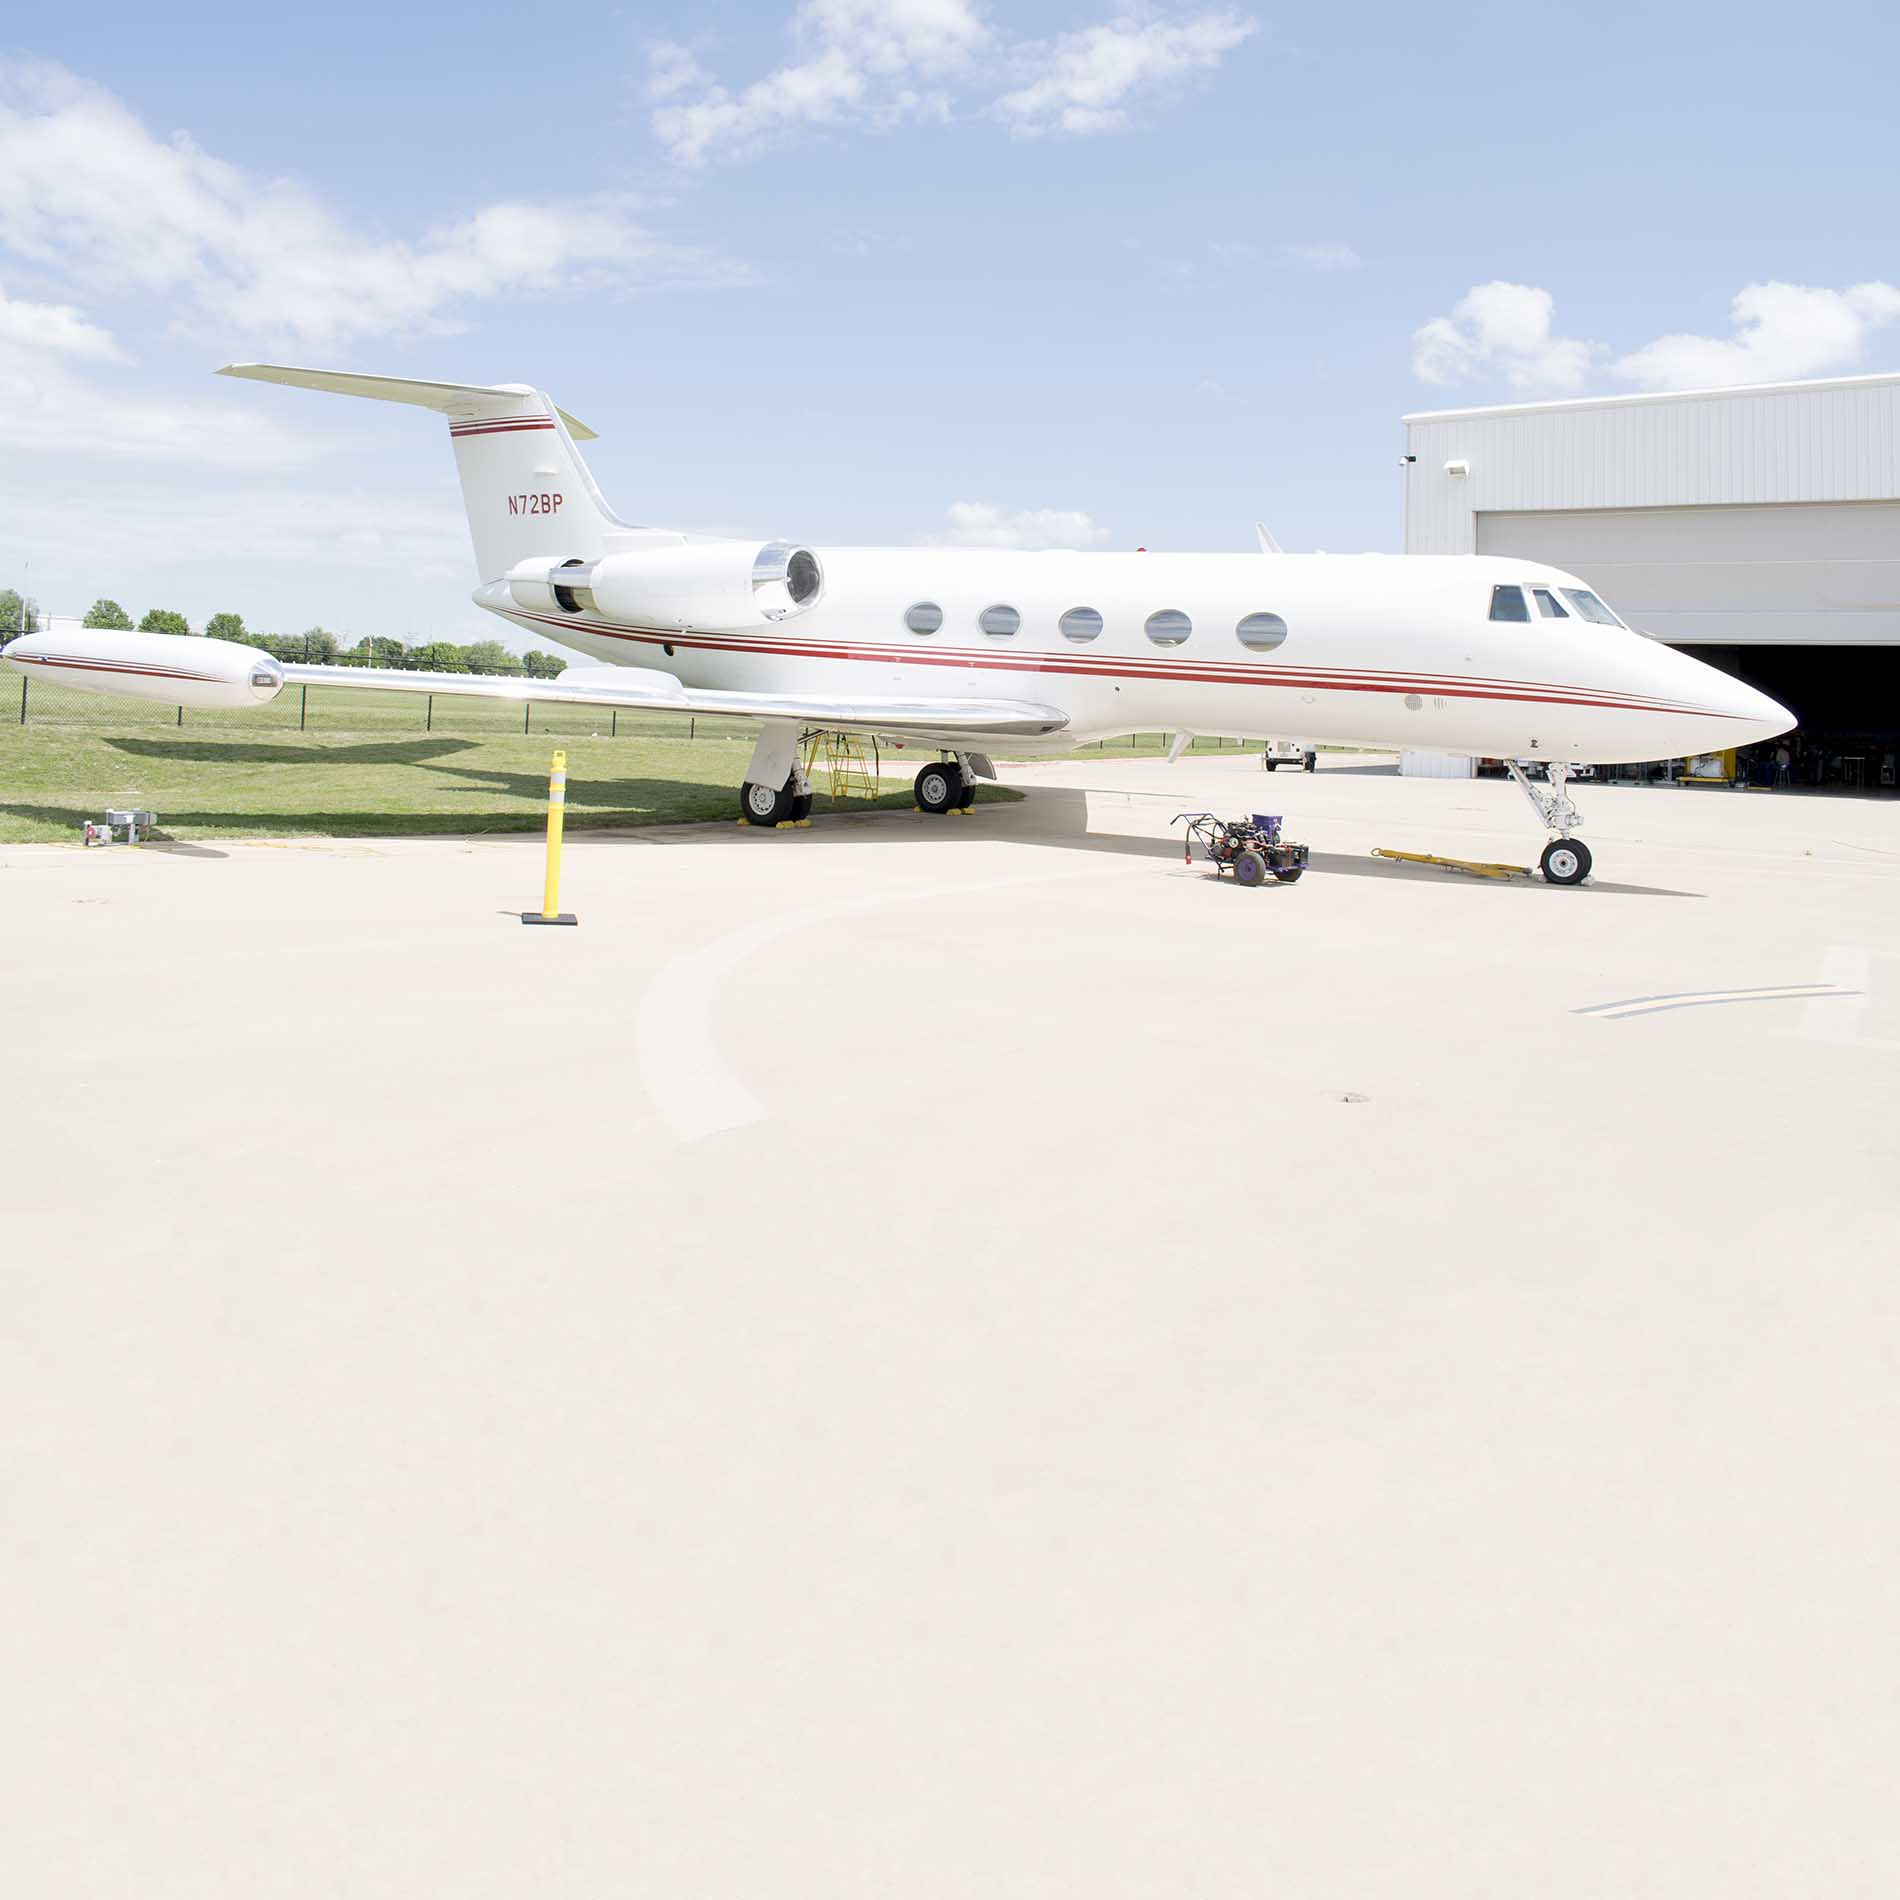 NW Campus' aviation program was donated a Gulfstream G-II airplane that once flew former Vice President Dick Cheney and others.